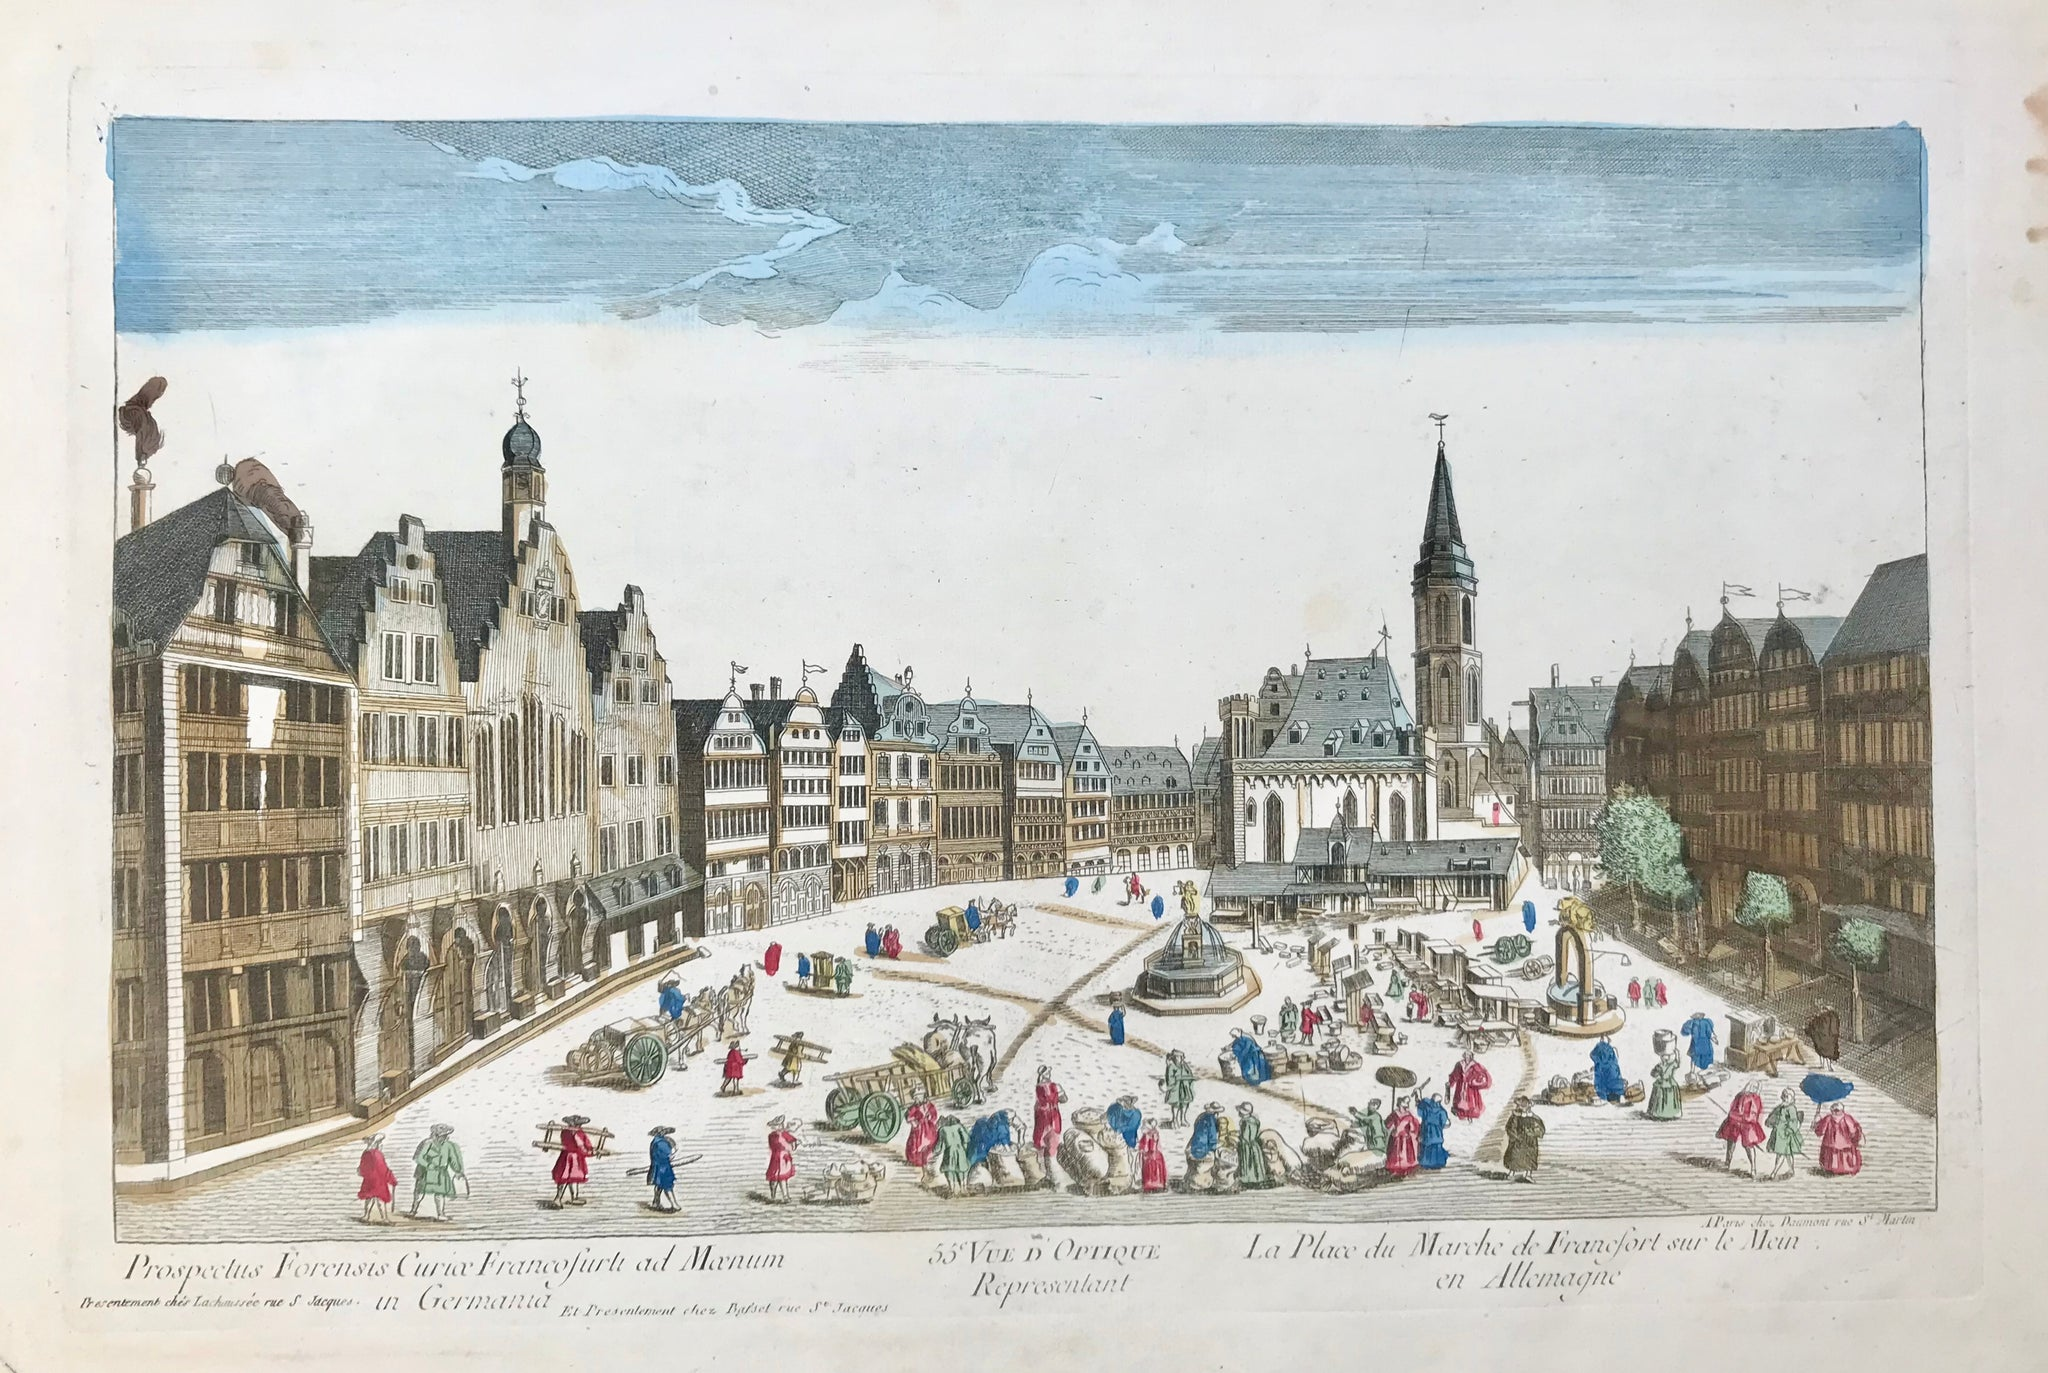 "Frankfurt, Germany. ""La Place du Marche de Francfort sur le Mein en Allemagne"". Market day in Frankfurt.  Vue d'optique Nr. 55). Copper etching. Original hand coloring. Published by Daumont. Paris, ca. 1790."